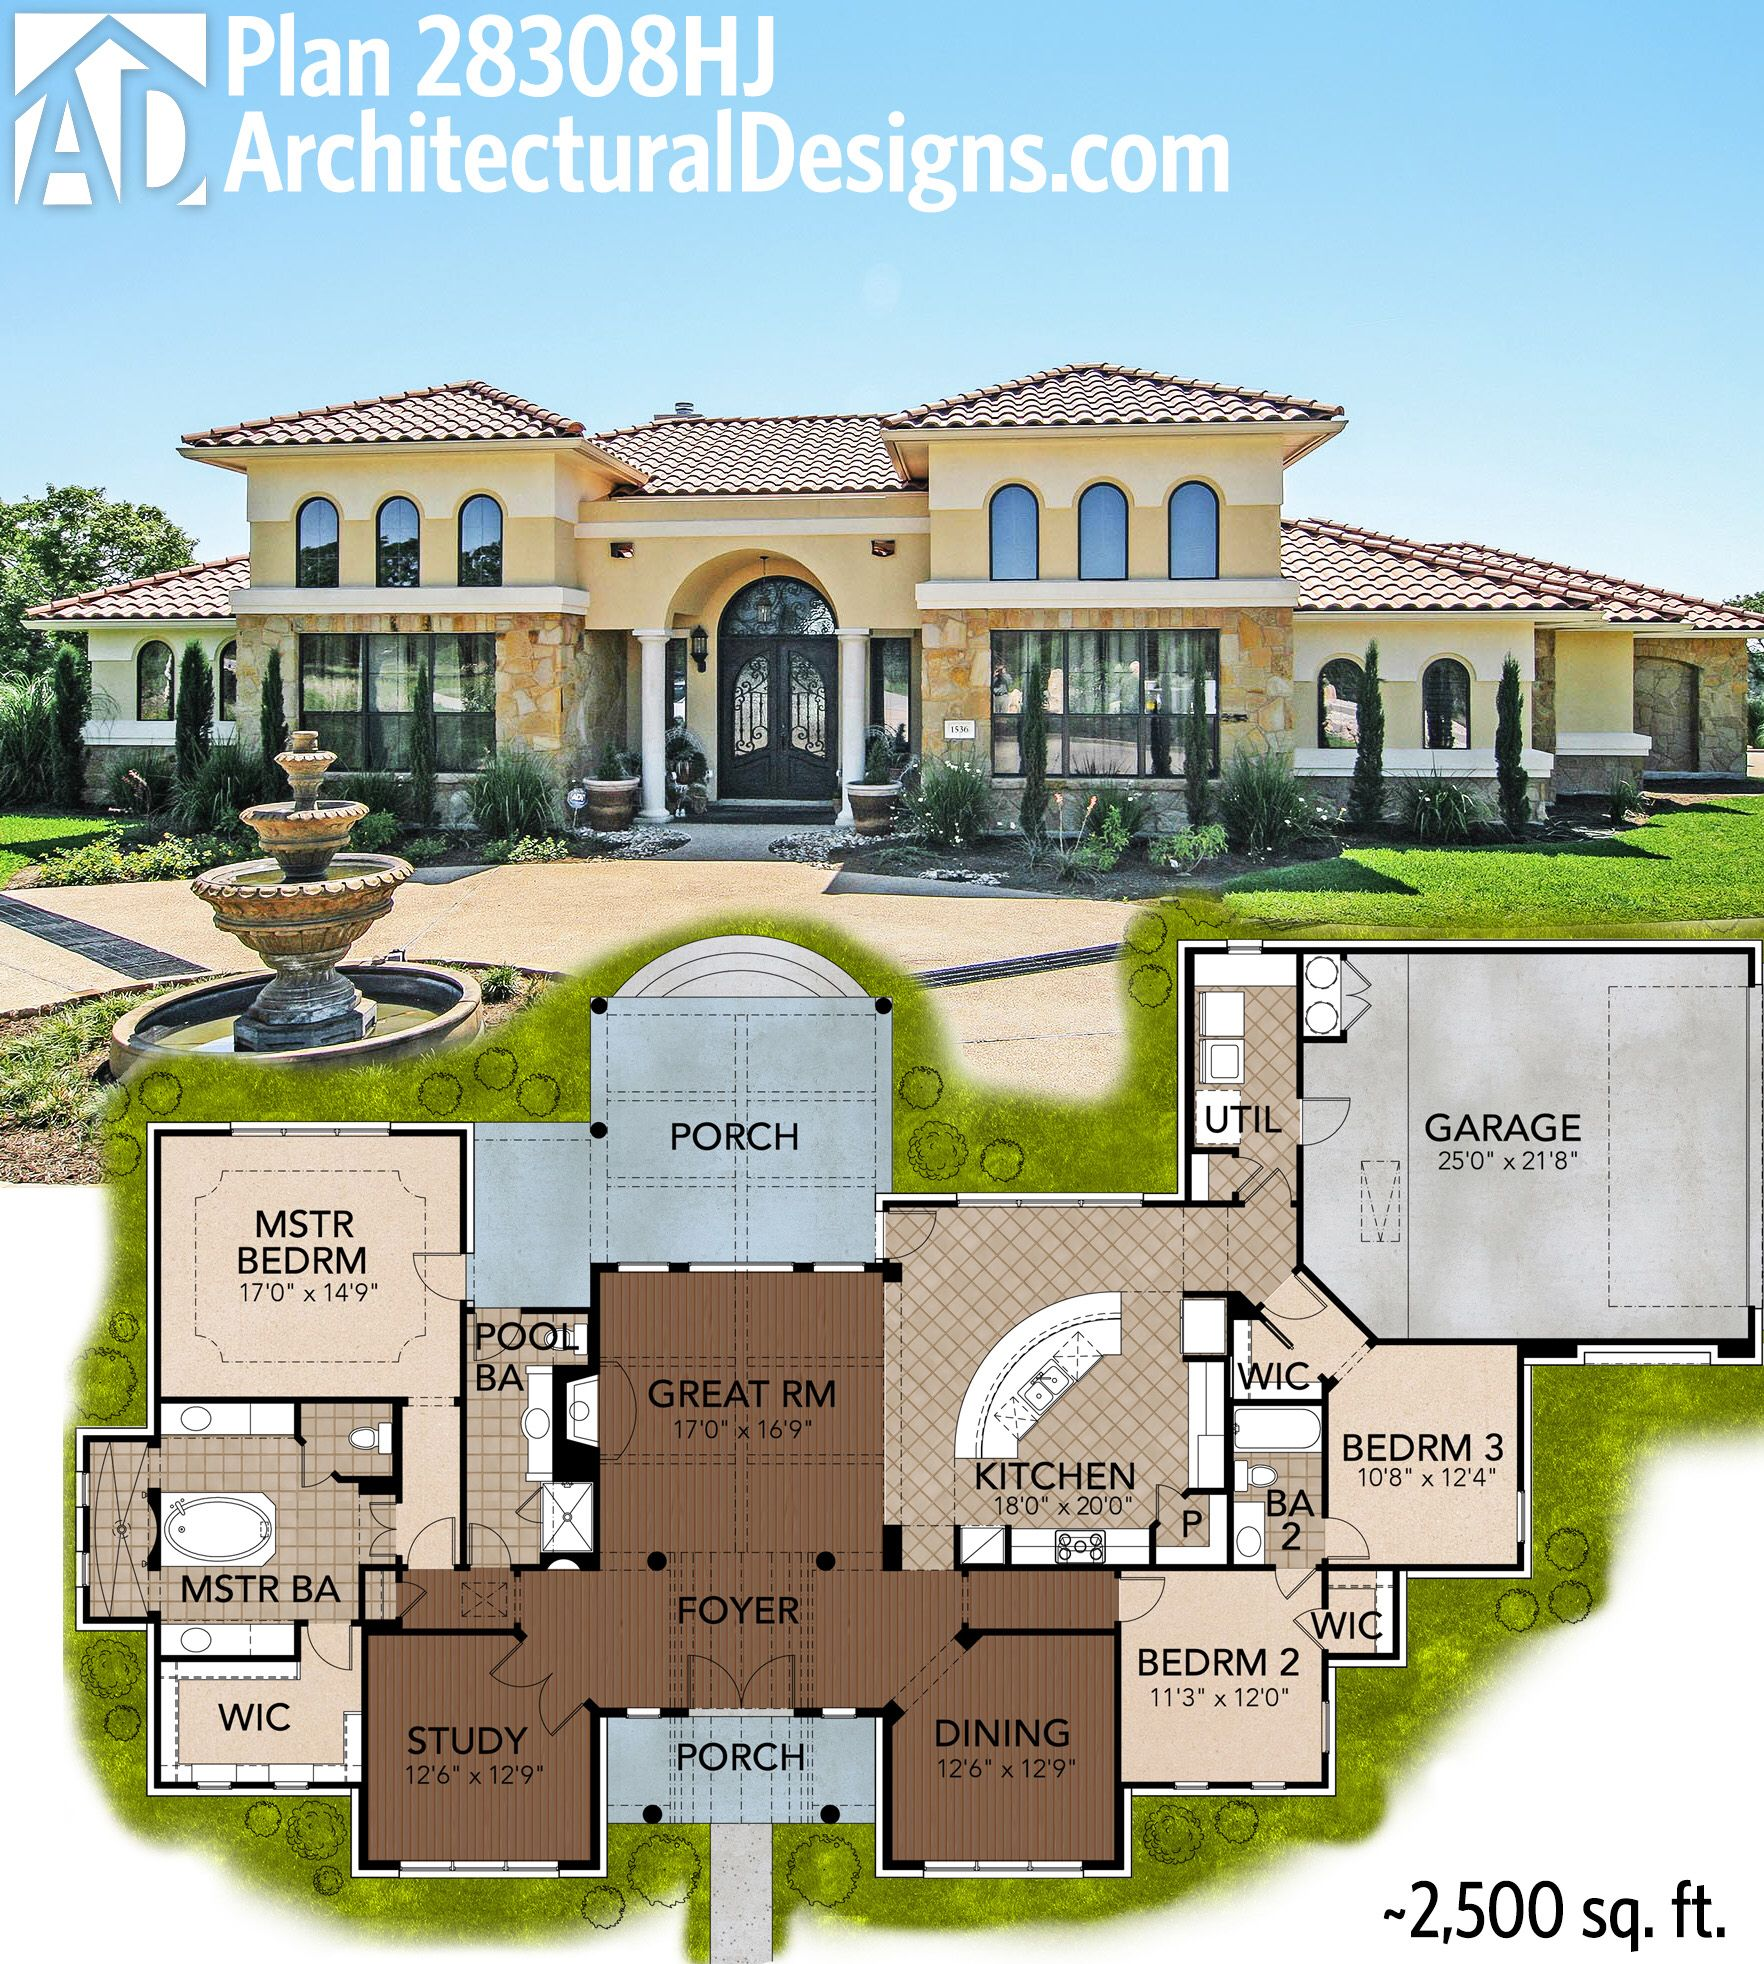 Mediterranean Style House Plan: Great Symmetry With Architectural Designs Mediterranean